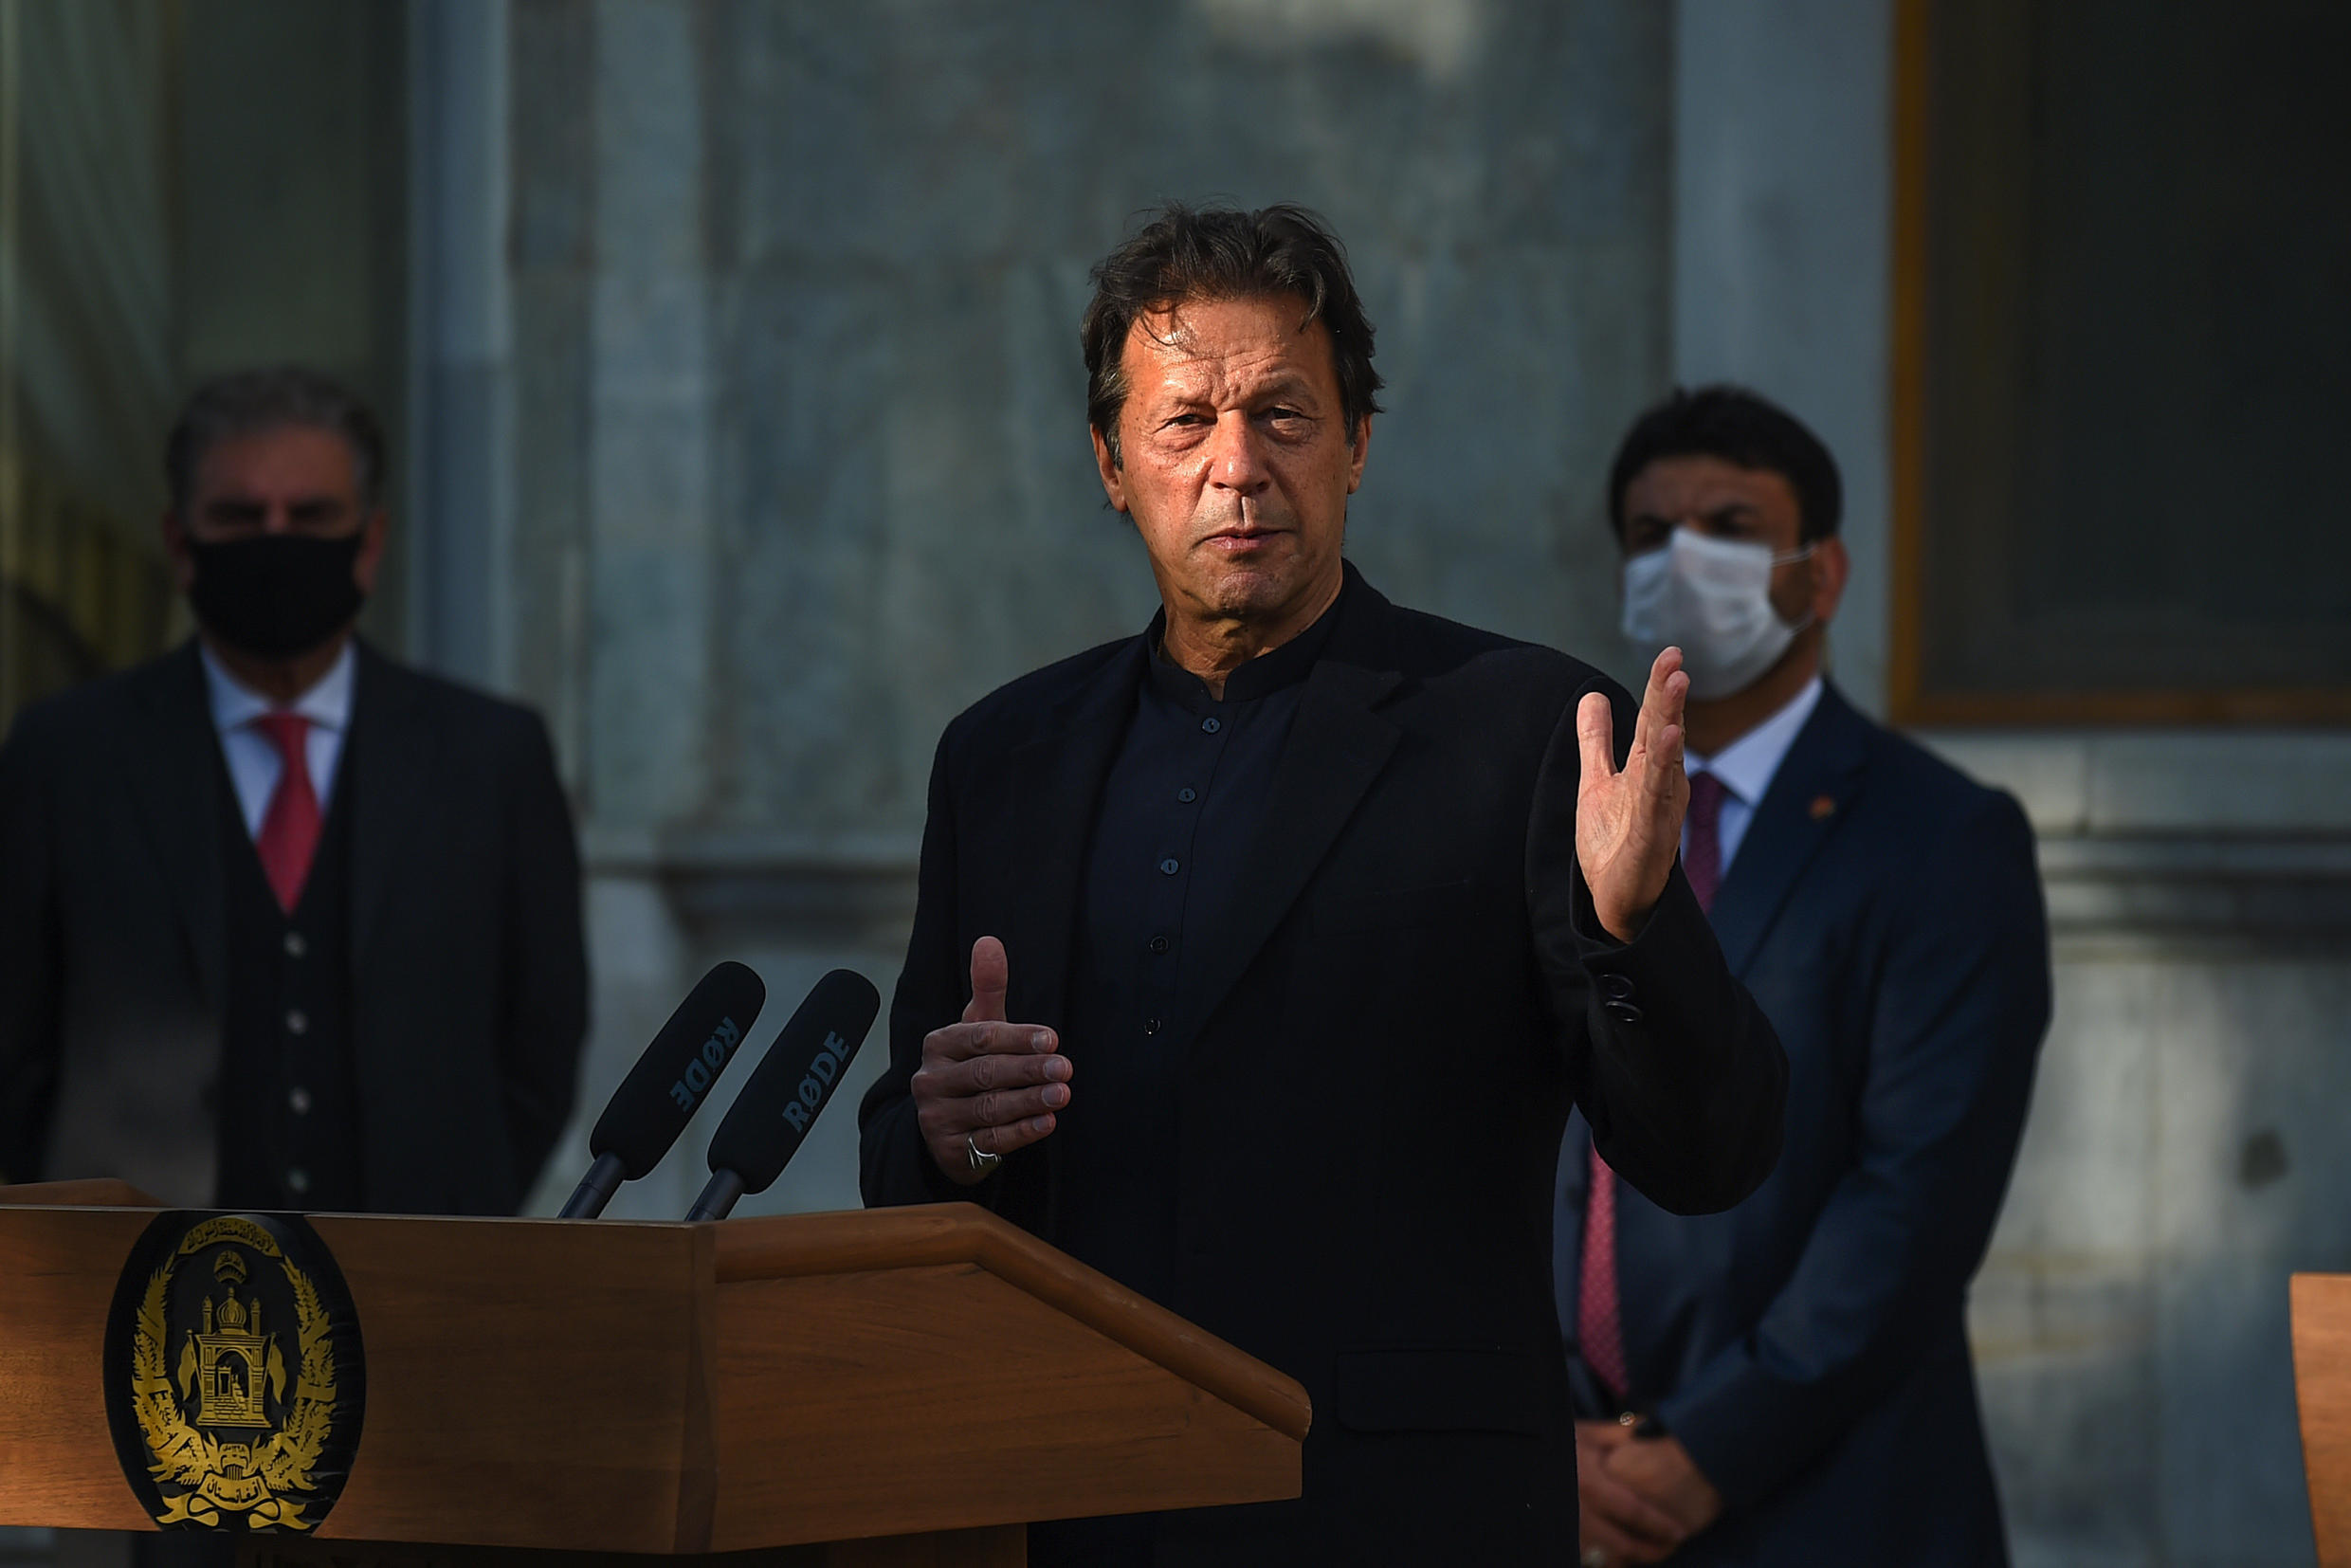 Pakistan Prime Minister Imran Khan's gamble seems to have backfired spectacularly